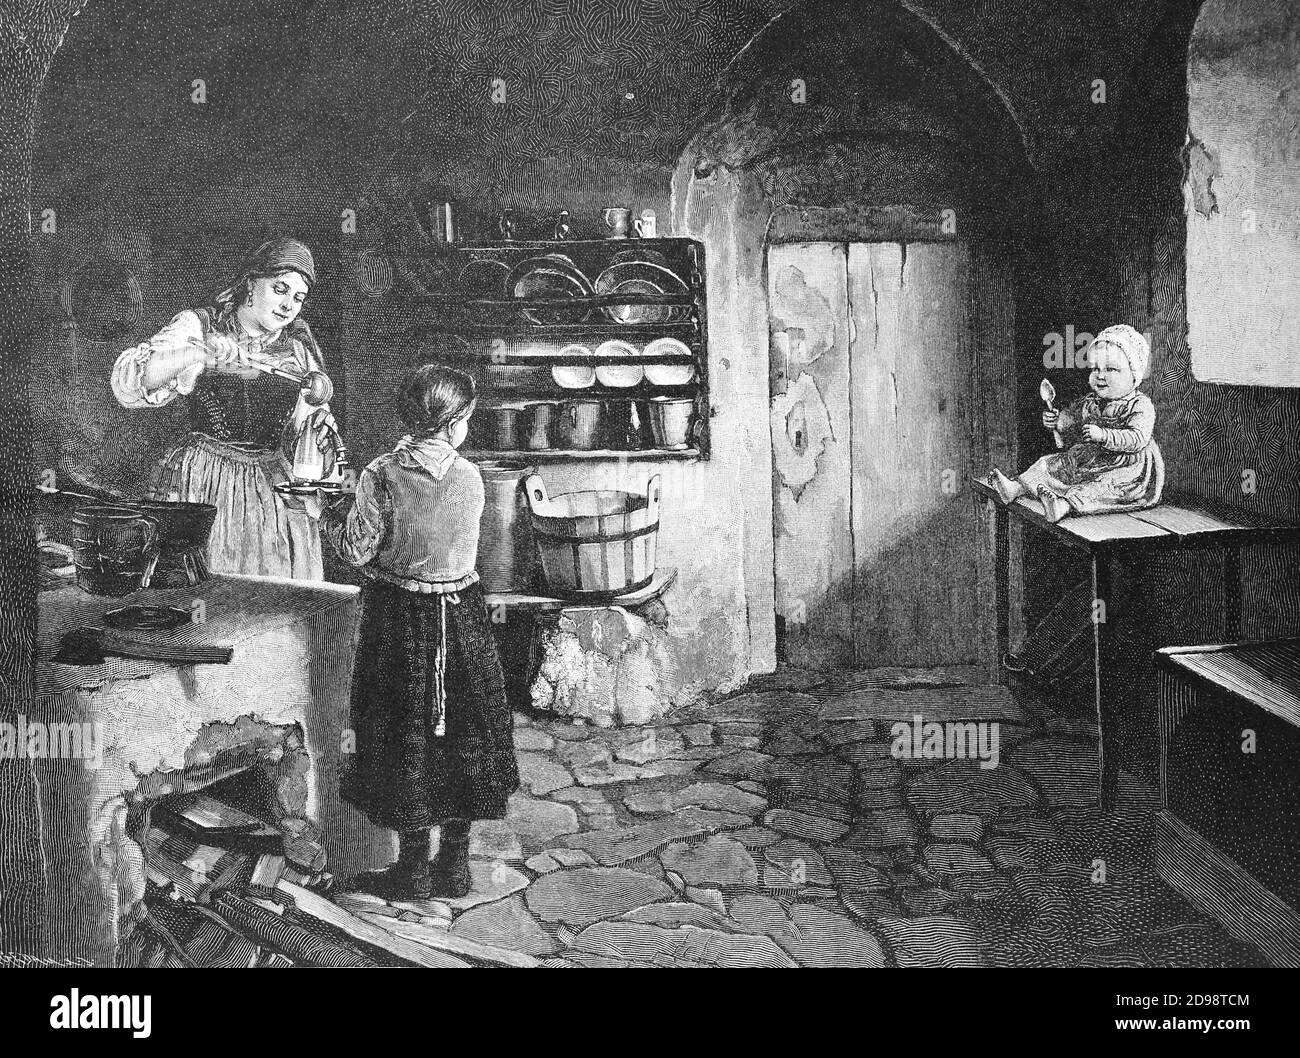 kitchen scene in a farmhouse, 1887, Austria, the hungry baby waits impatiently for his meal  /  Küchenszene in einem Bauernhaus, 1887, Österreich, das hungrige Baby wartet ungeduldig auf seine Mahlzeit, Historisch, historical, digital improved reproduction of an original from the 19th century / digitale Reproduktion einer Originalvorlage aus dem 19. Jahrhundert, Stock Photo